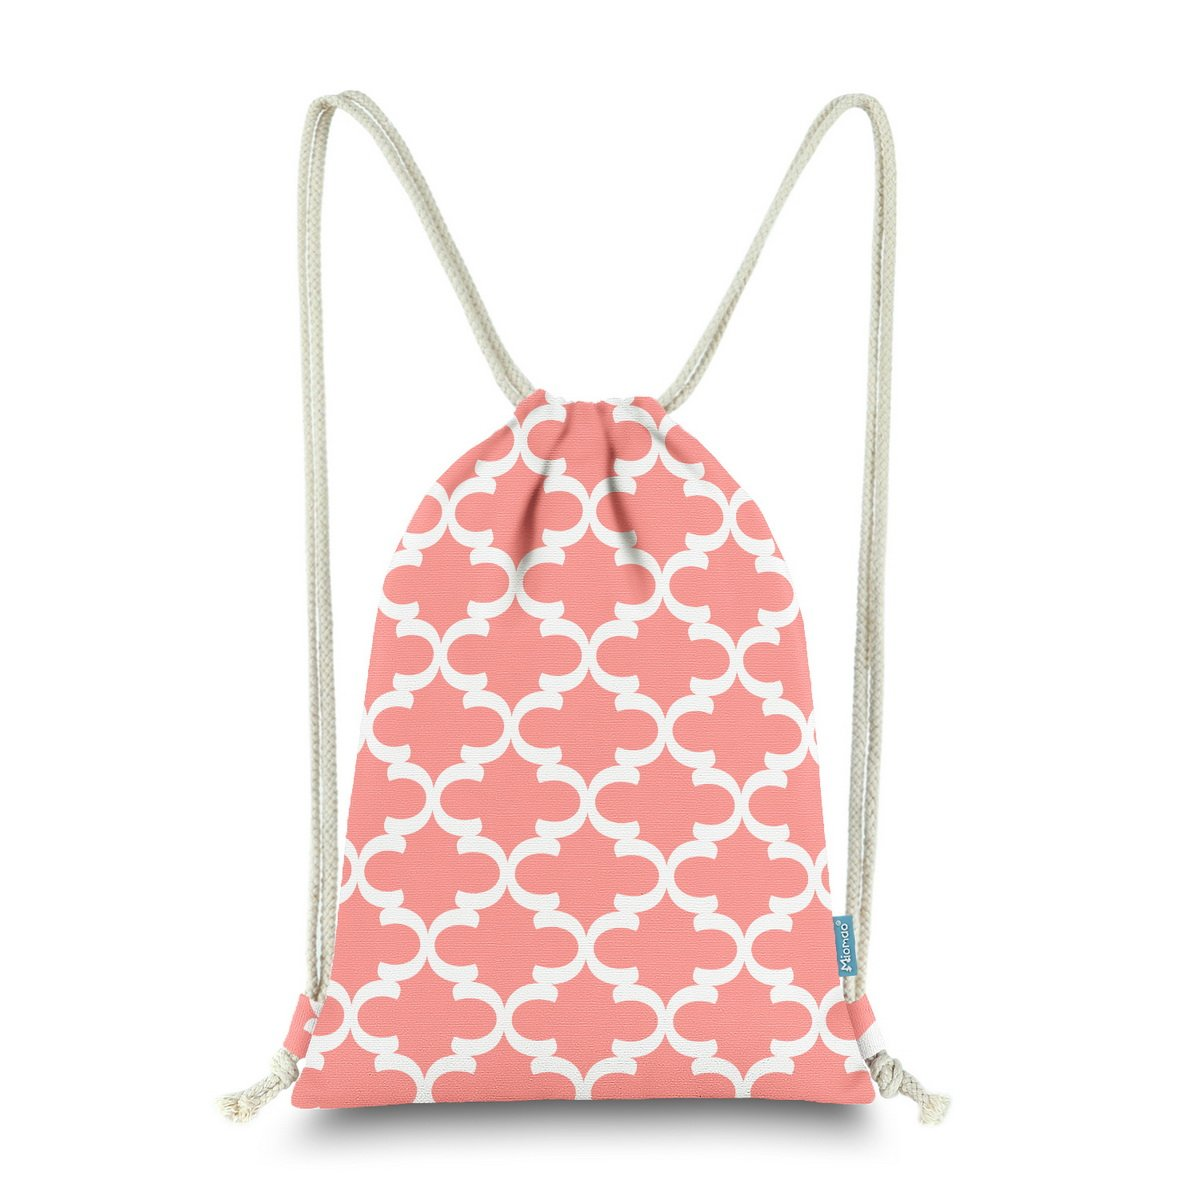 Miomao Drawstring Backpack Bag Quatrefoil Gym Sack Pack Geometric Sinch Sack Sport String Bag With Pocket Christams Gift Beach Bag 13 X 18 Inches Coral Pink